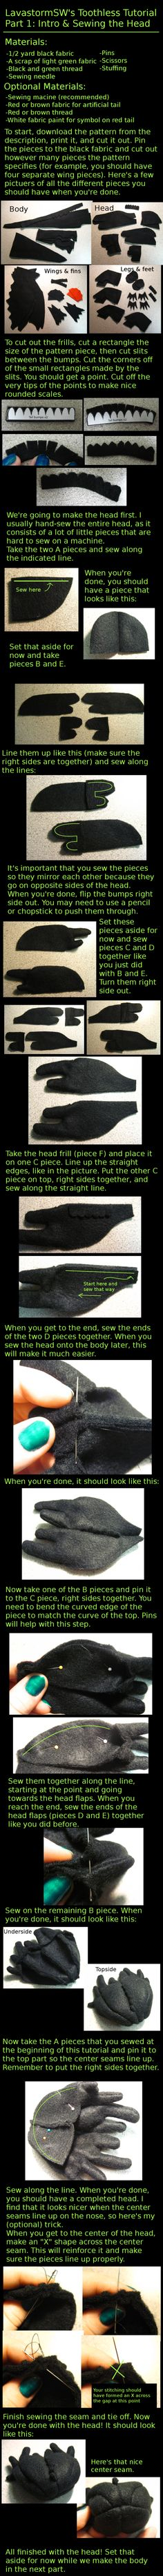 Toothless Tutorial Part 4 by LavastormSW on DeviantArt Sewing Toys, Sewing Crafts, Sewing Projects, Cosplay Tutorial, Cosplay Diy, Craft Tutorials, Sewing Tutorials, Toothless Costume, Stuffed Animal Patterns